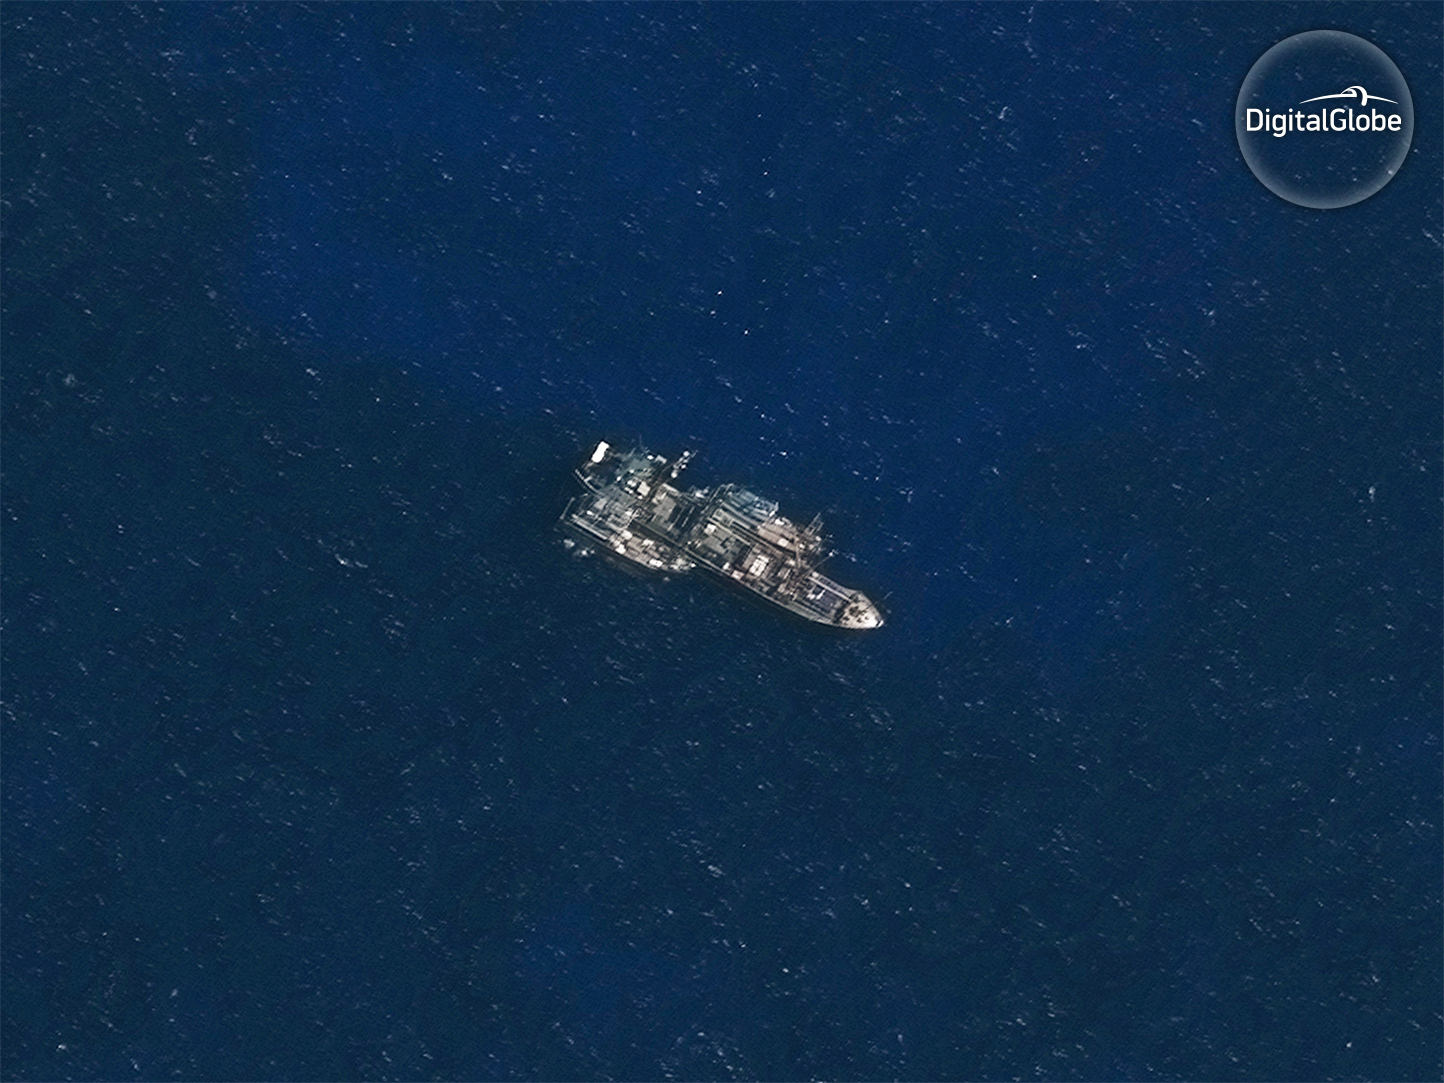 The refrigerated cargo vessel (reefer) Leelawadee with two unidentified likely fishing vessels tied alongside. Captured by DigitalGlobe on November 30, 2016. (DigitalGlobe)